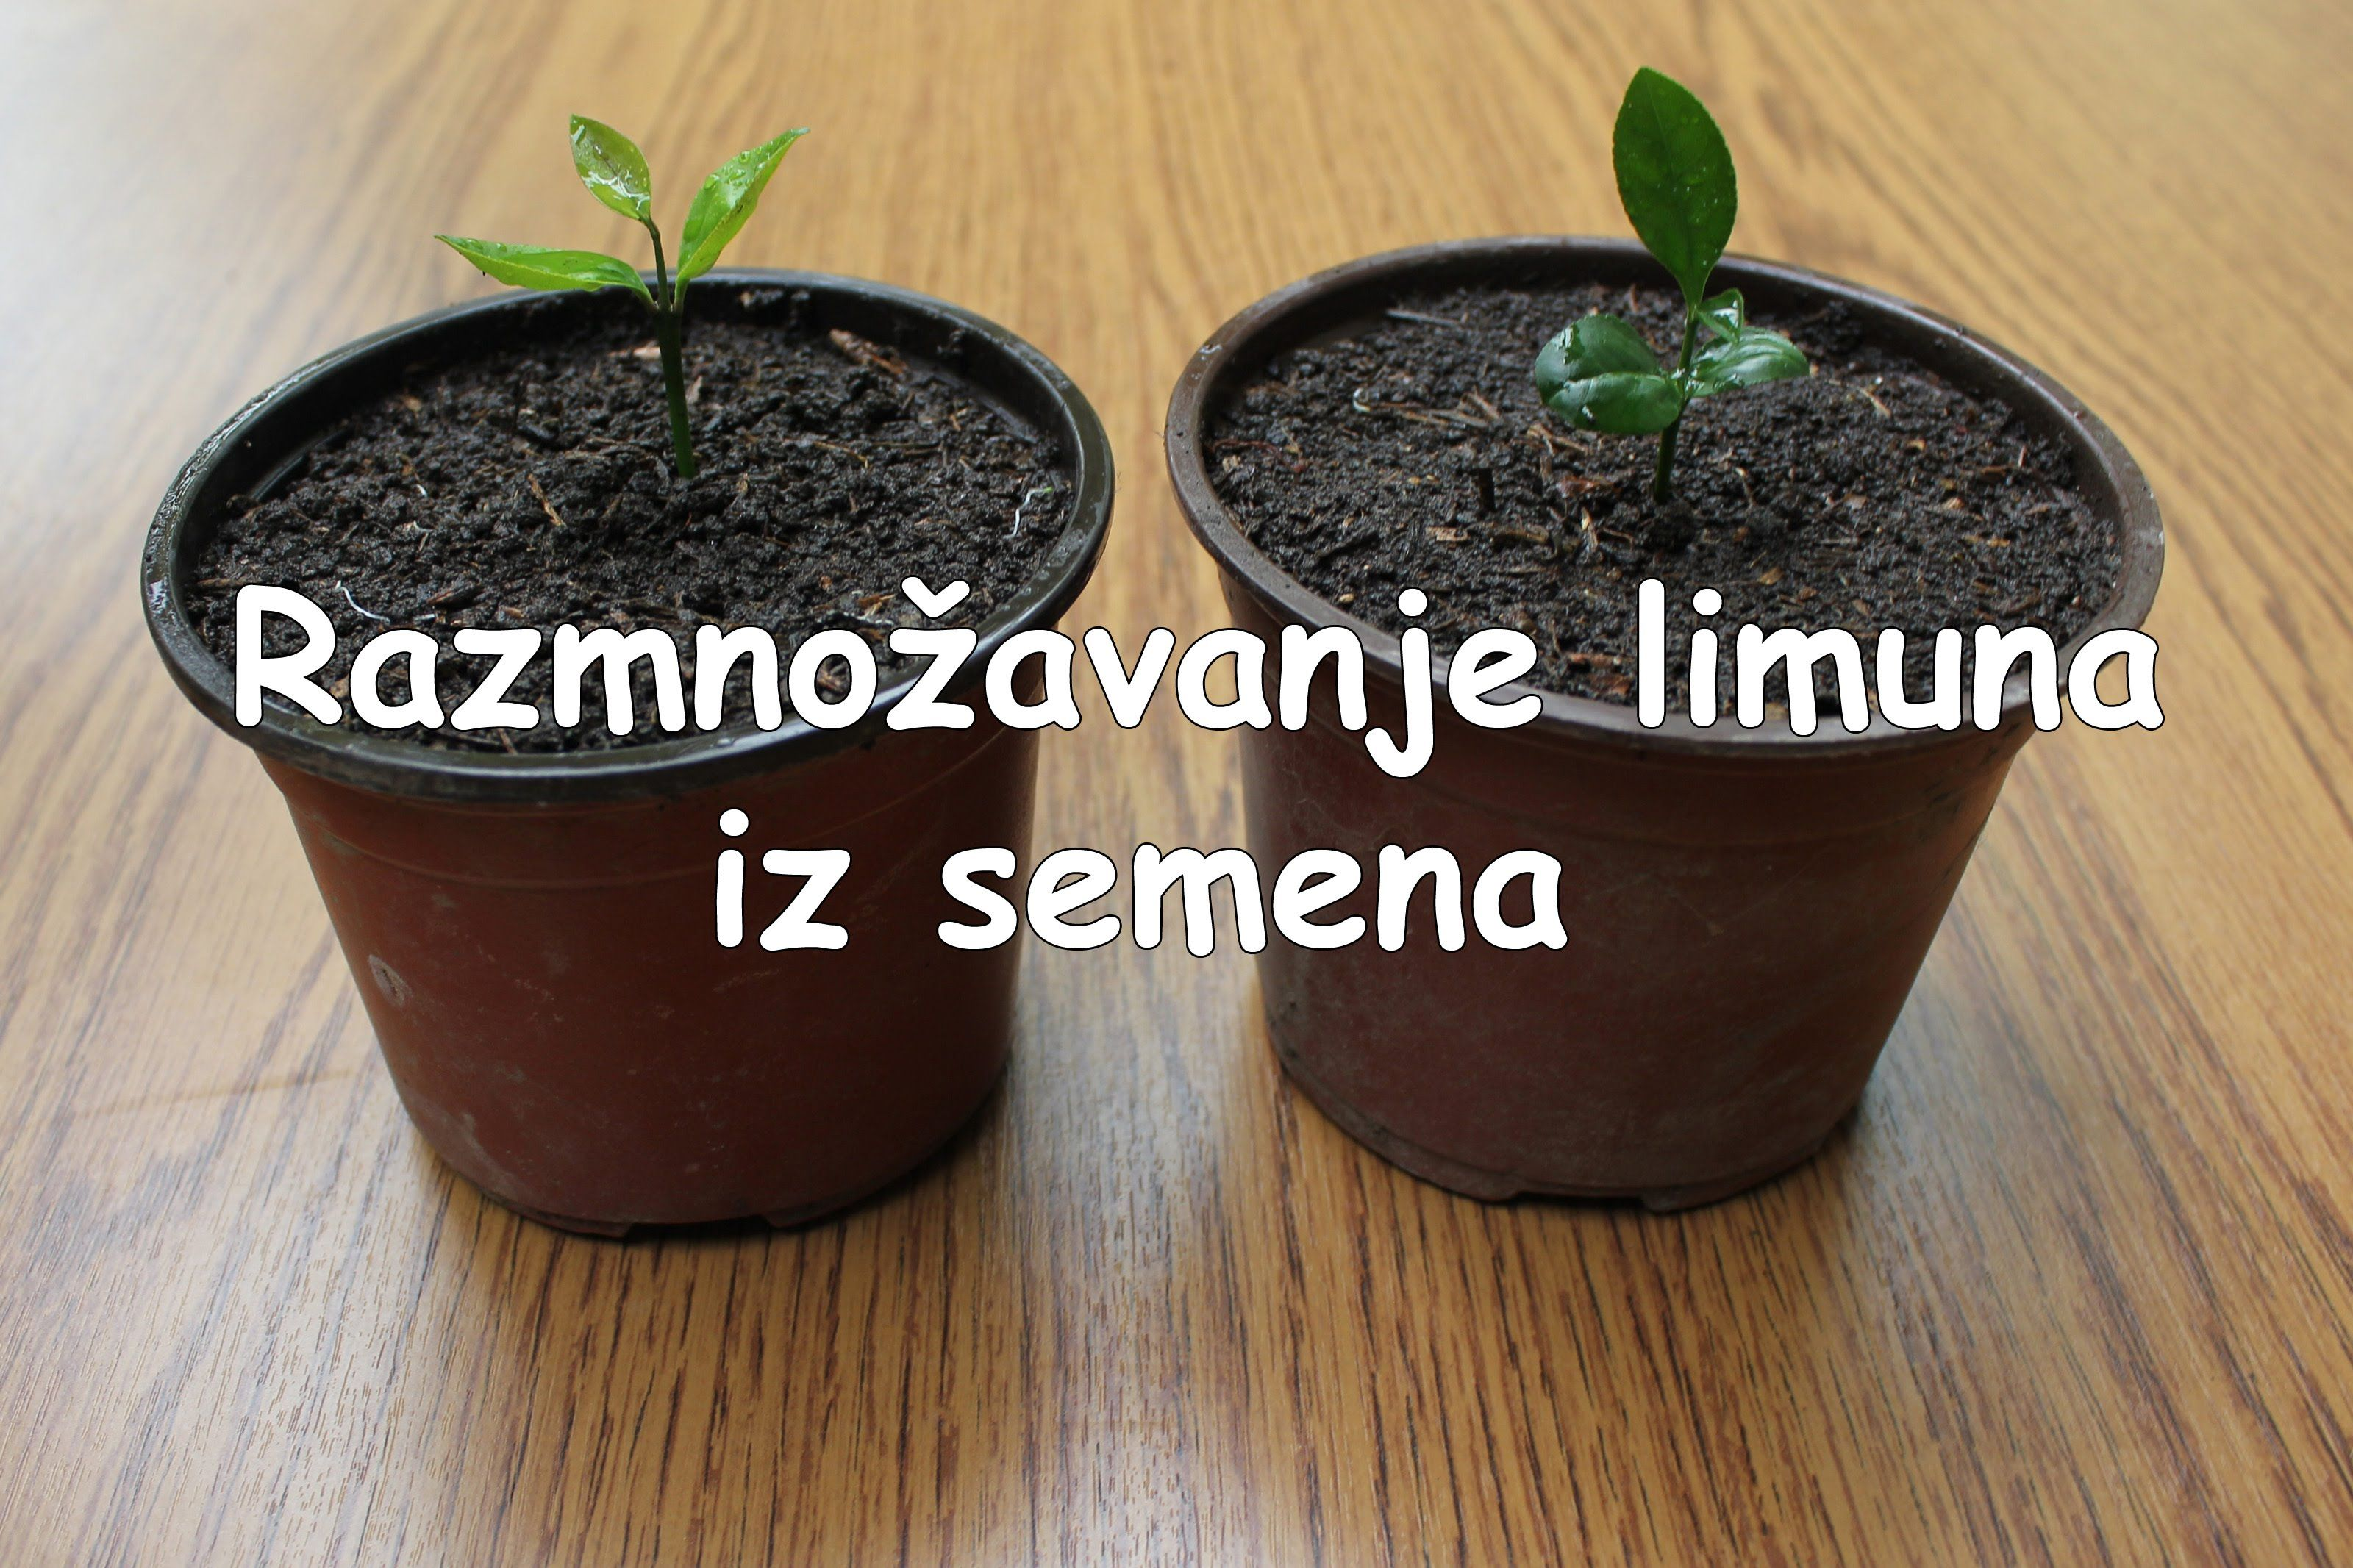 Growing lemon from seed seeds growing planter pots